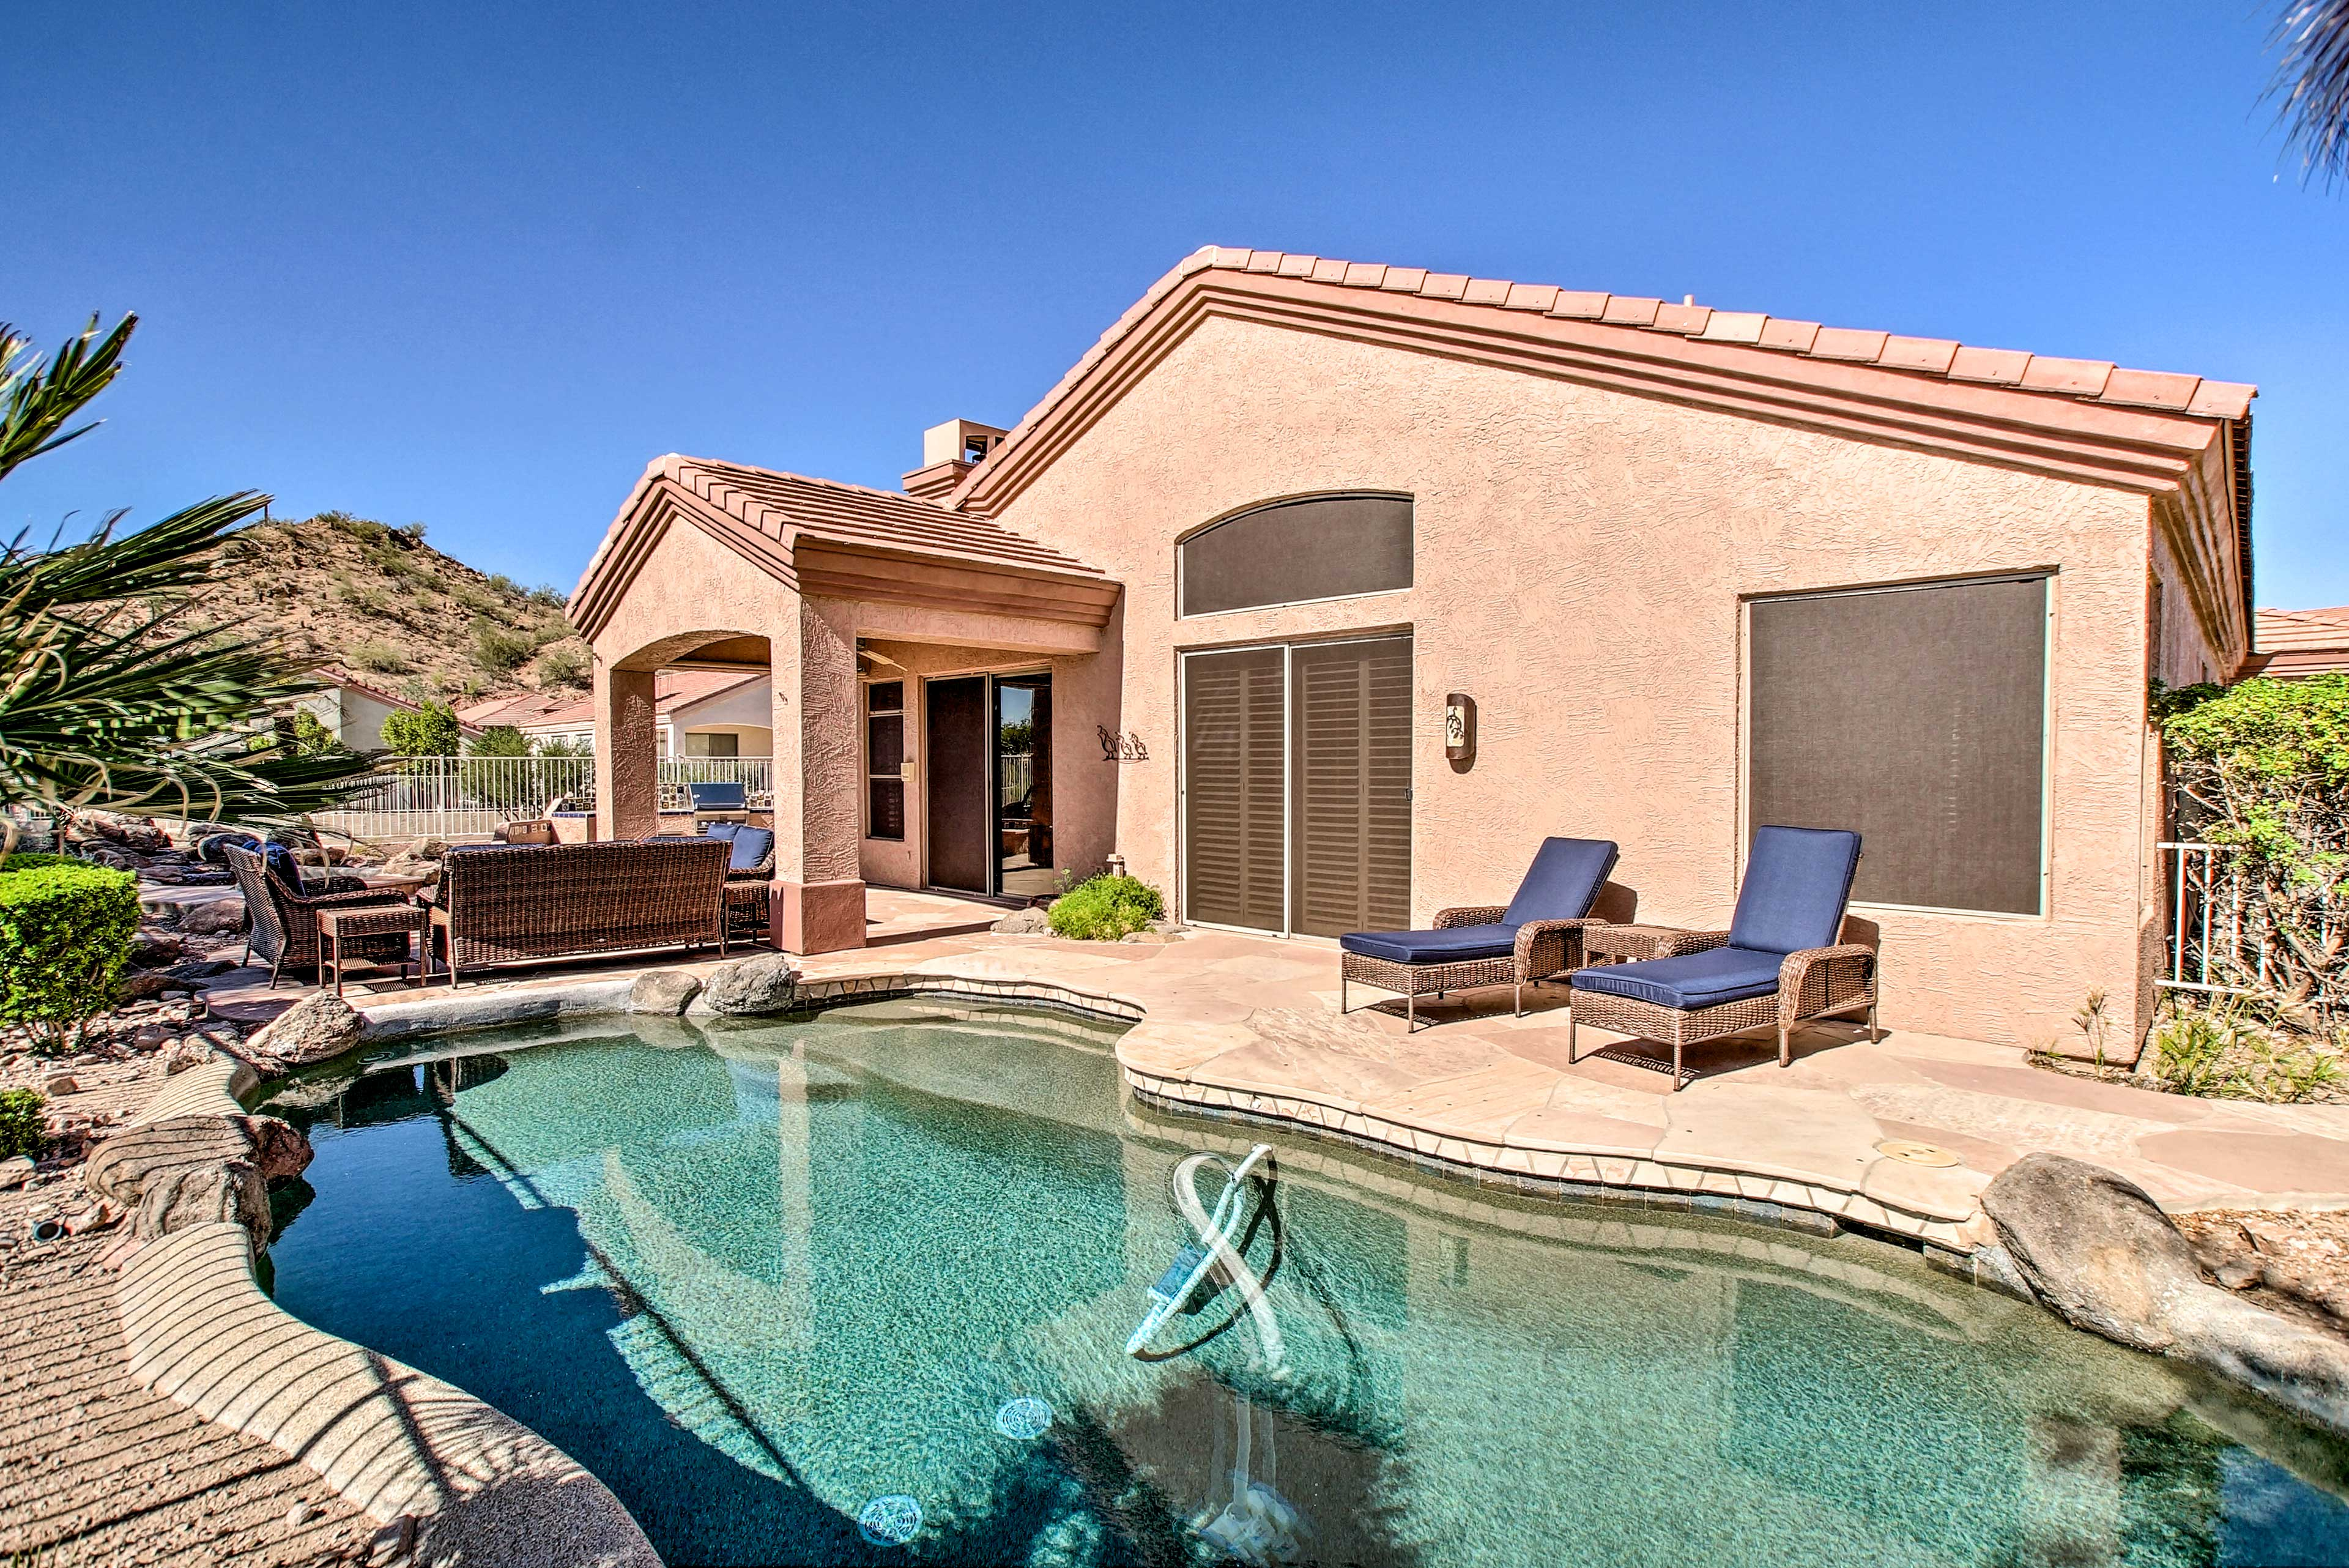 Run from the cold winter chills to this personal desert paradise!